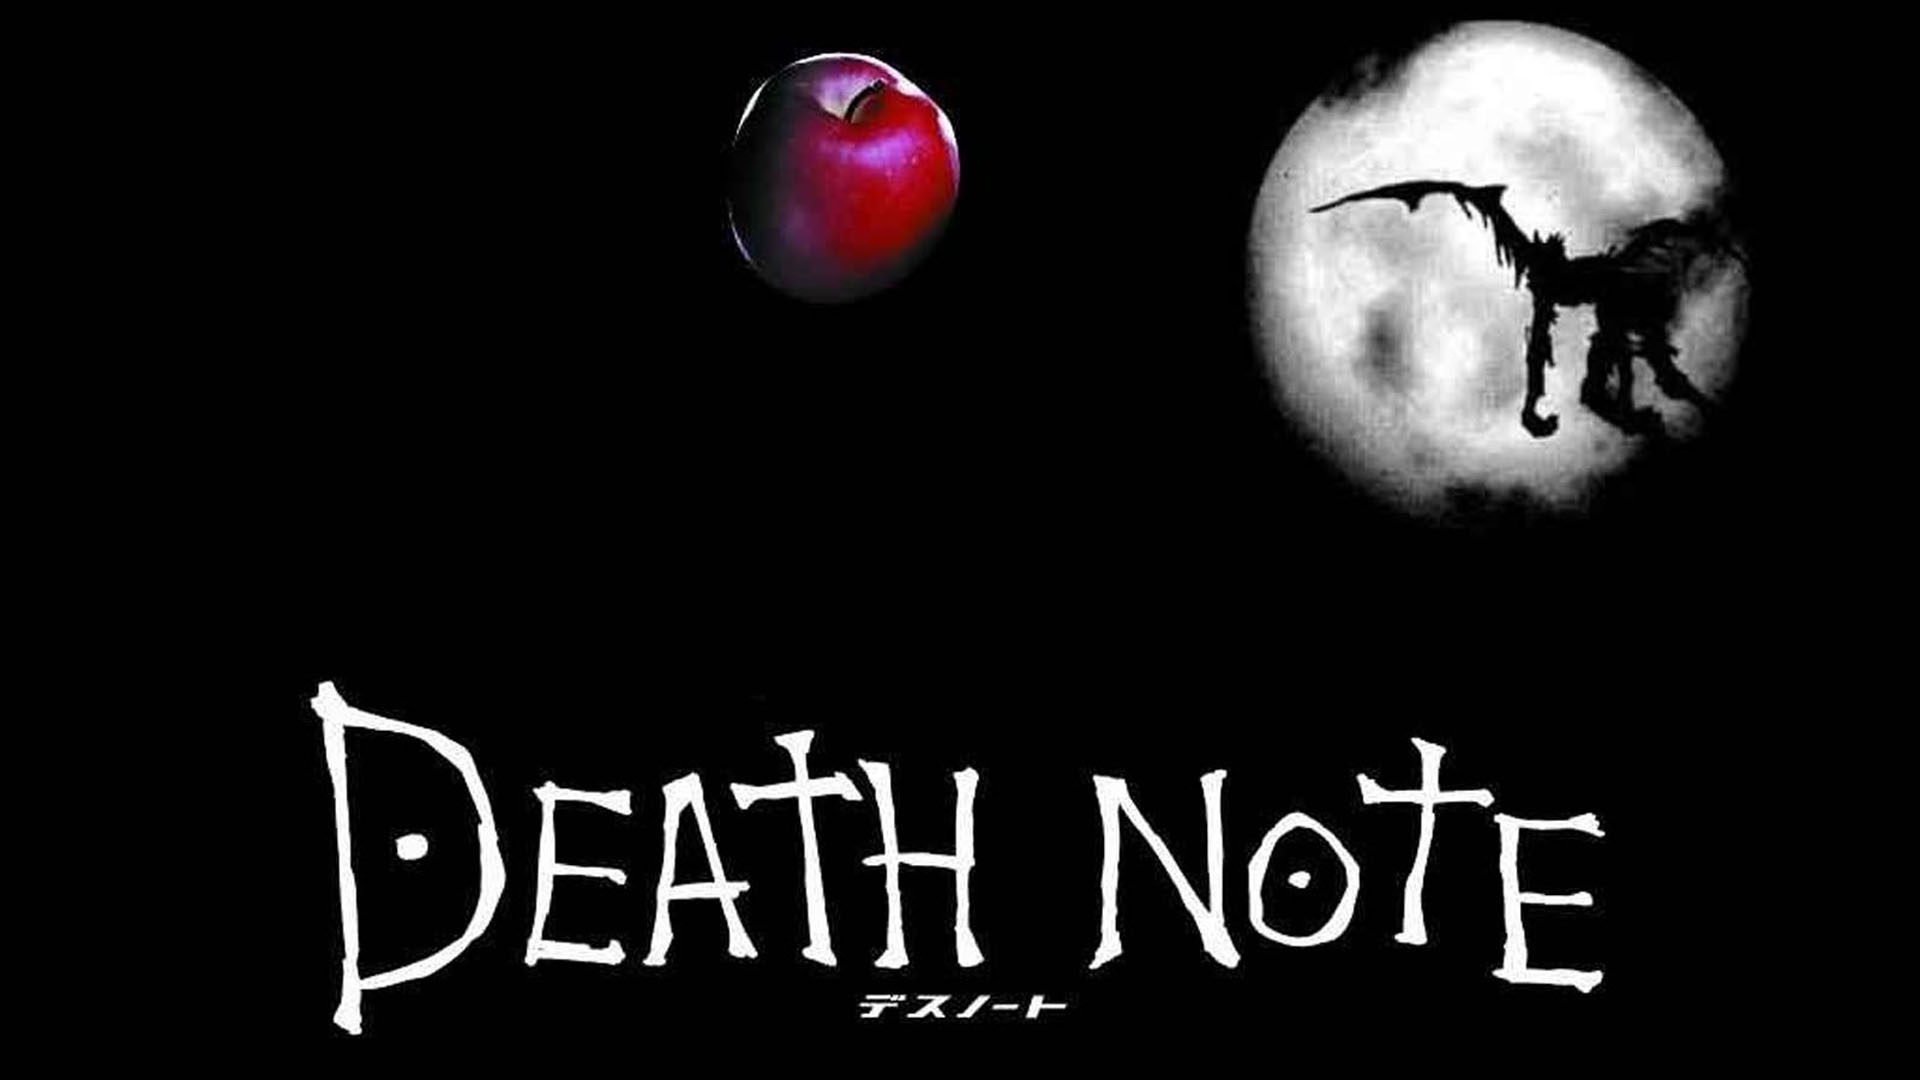 Death Note Related People 14 Hd Wallpaper